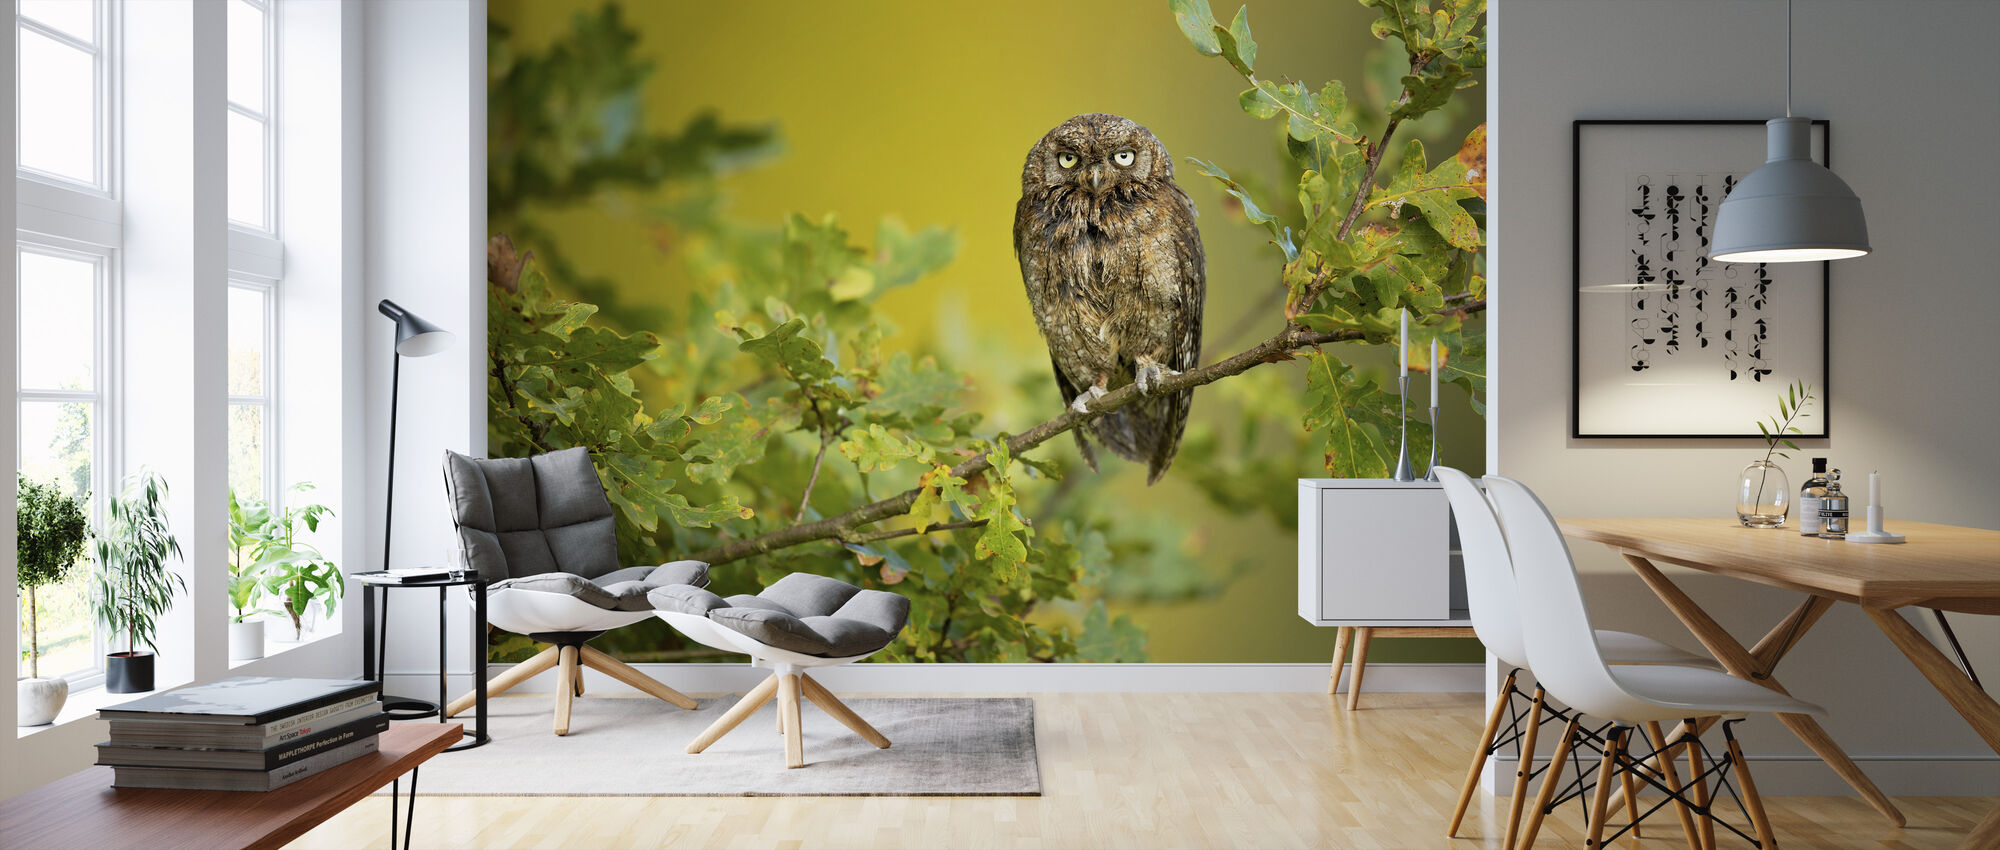 Eurasian Scops Owl - Wallpaper - Living Room